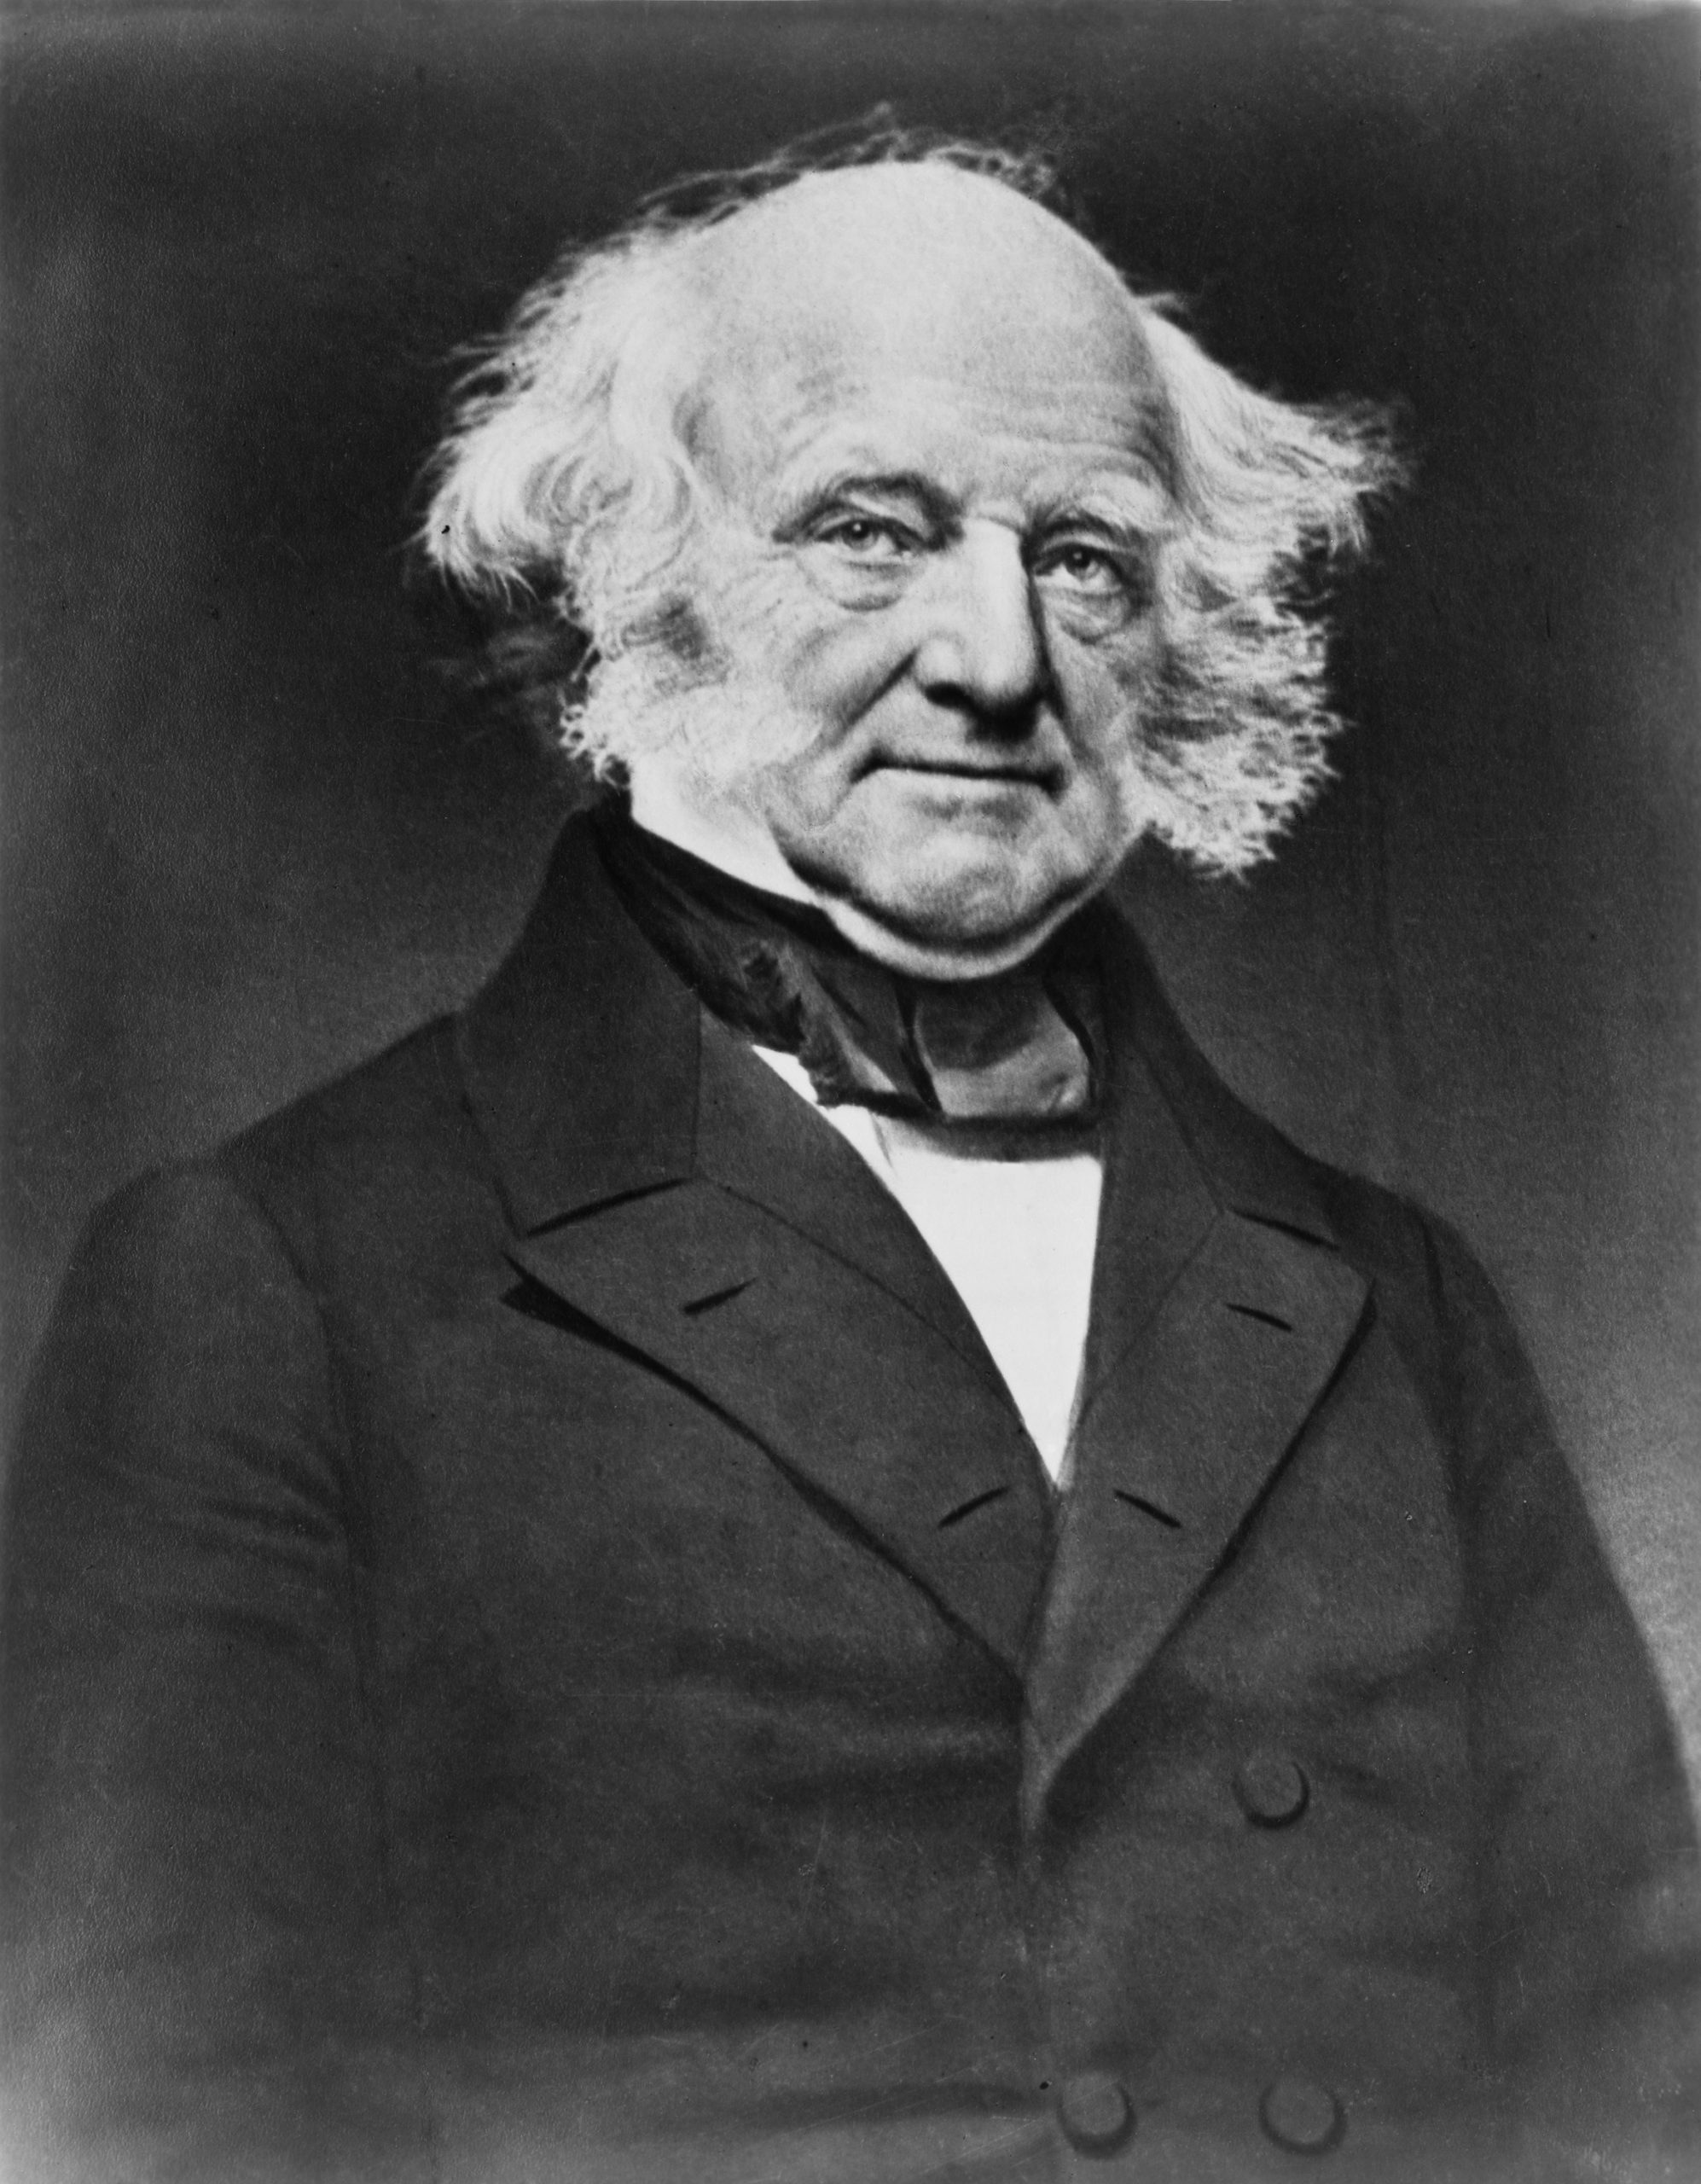 """He became known for being a shrewd politician. He earned the nicknames """"Little Magician"""" and the """"Red Fox"""" for his cunning politics. He was unable to get elected to a second term as president.  Served from 1837-1841."""